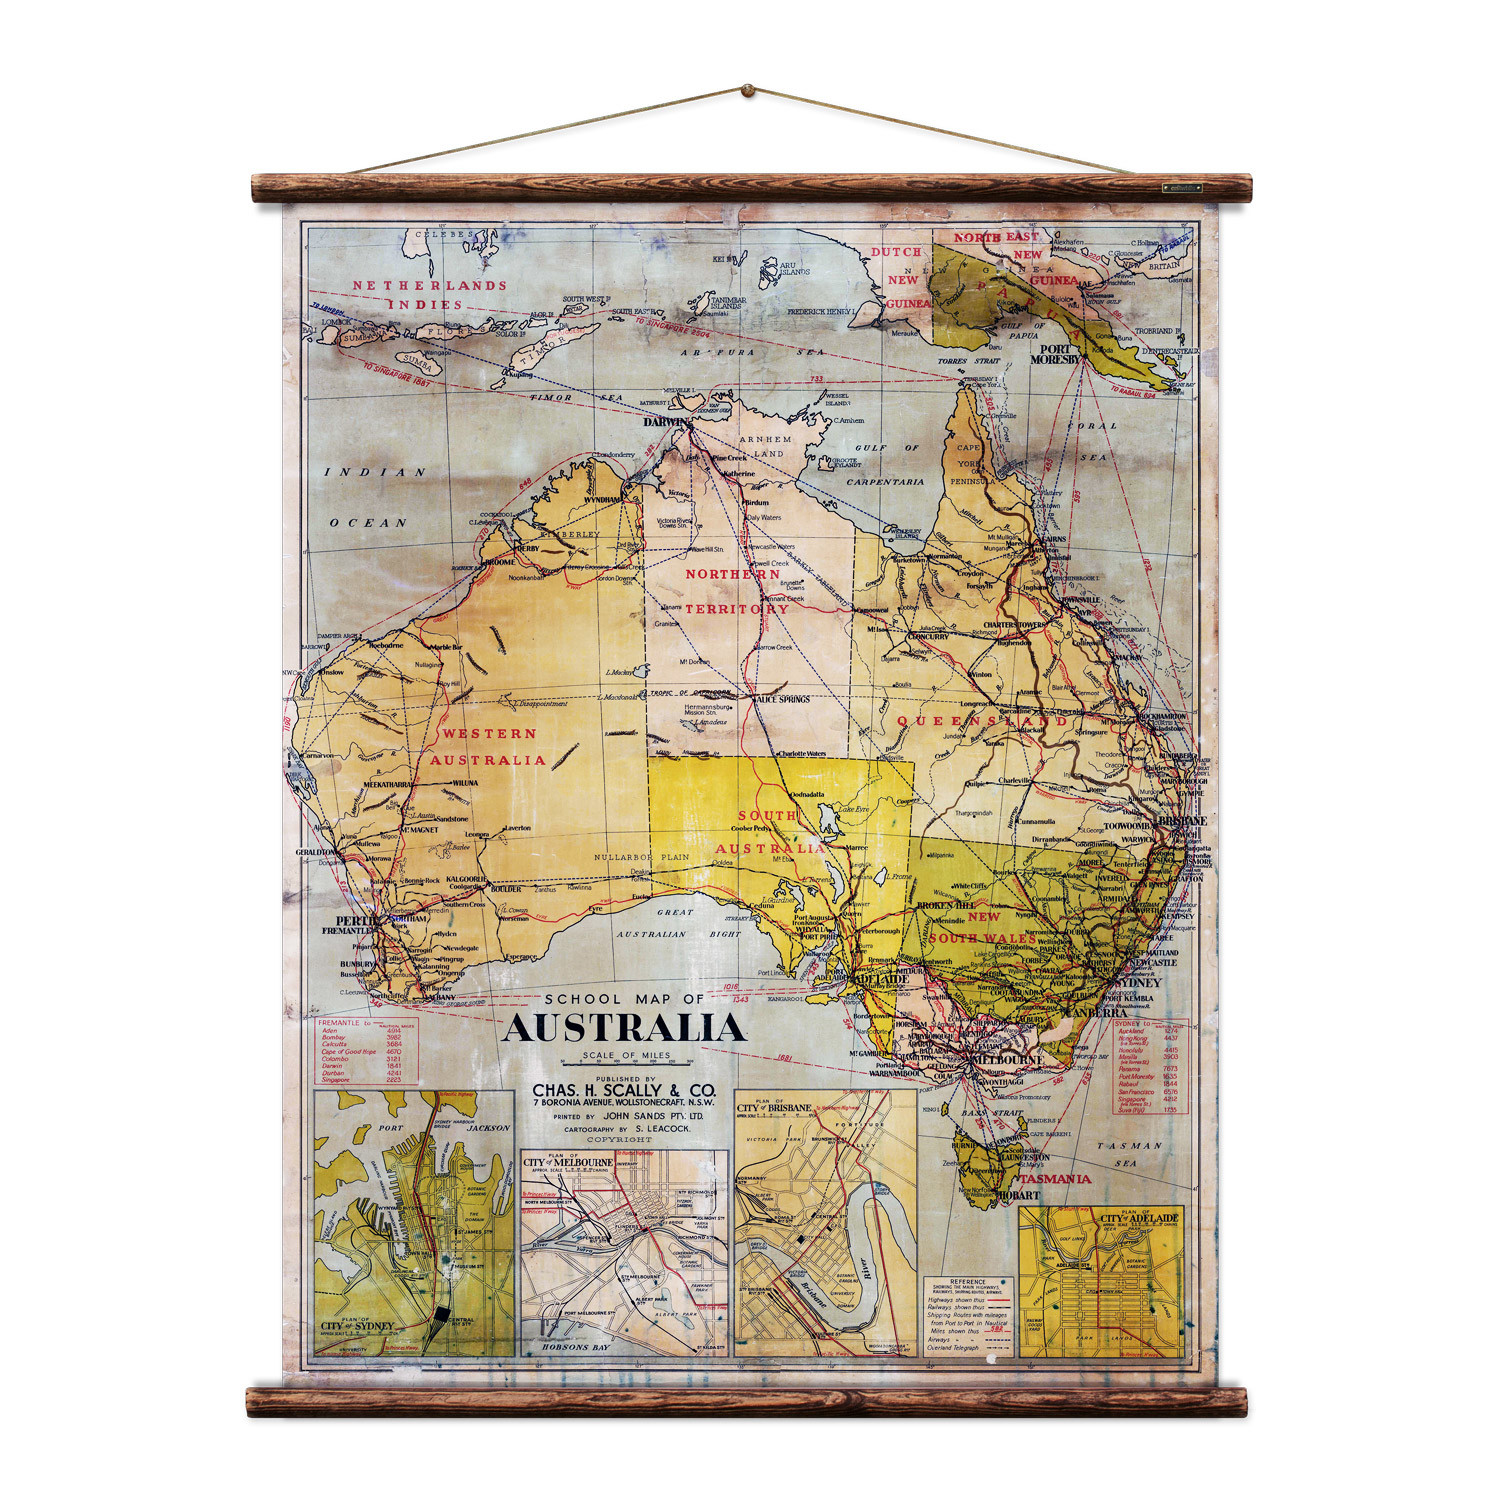 Australia Wall Map.Details About New School Map Of Australia Wall Hanging By Erstwhile